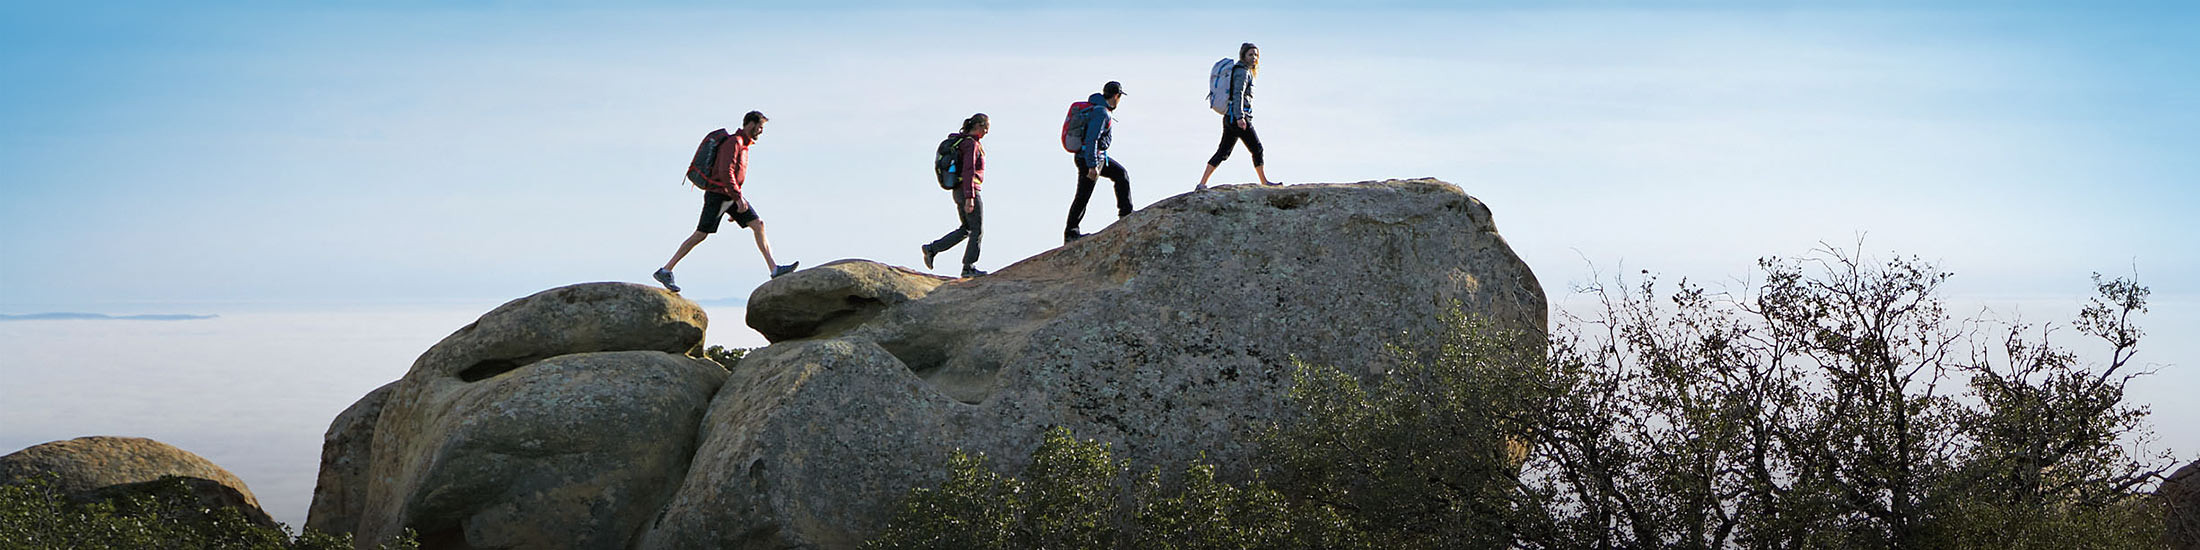 Four hikers silhouetted against blue sky